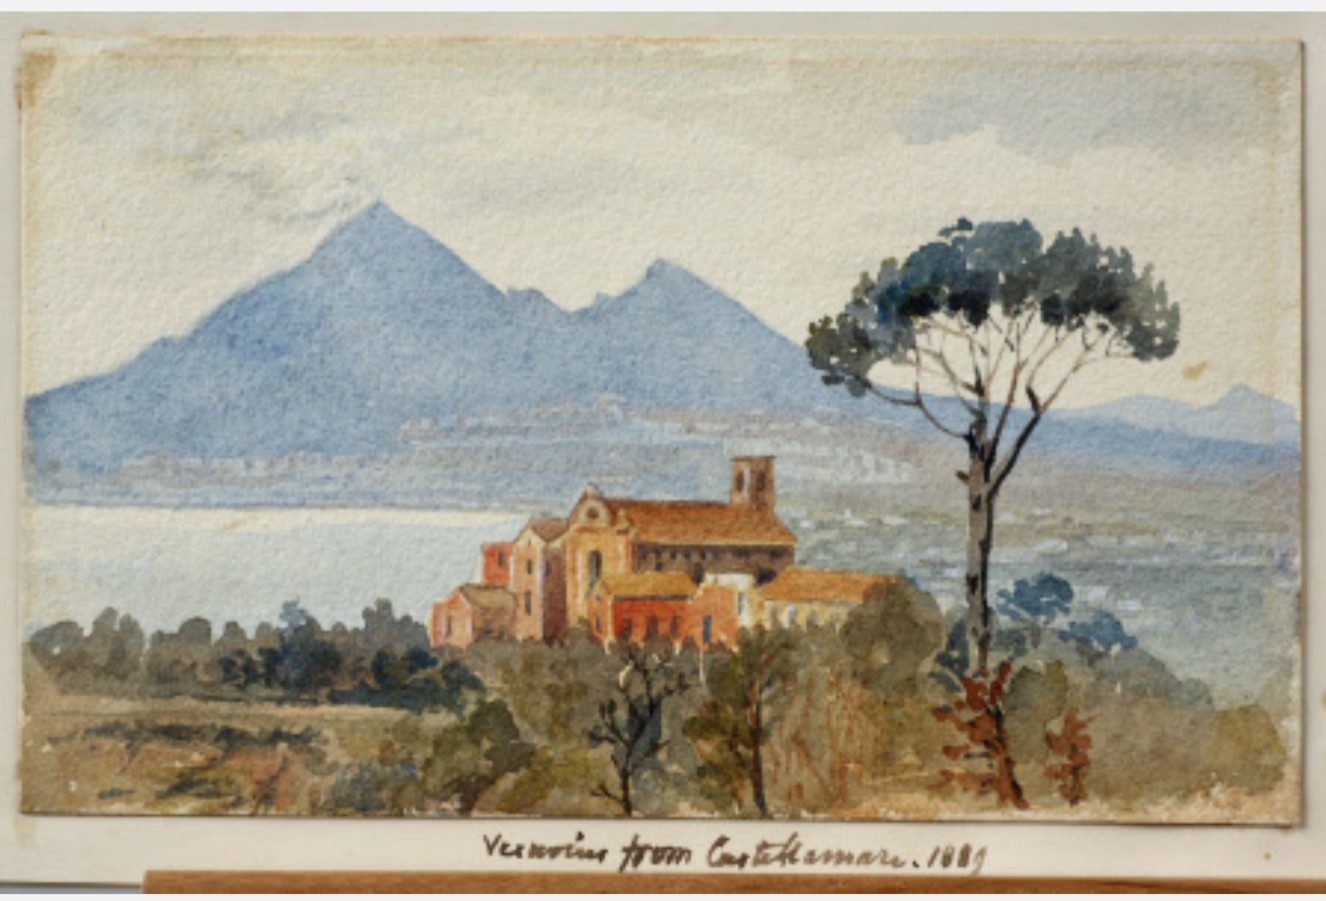 Emily Jane Wodhouse, Acquerello su carta, Chiesa di Santa Croce 2, 1889